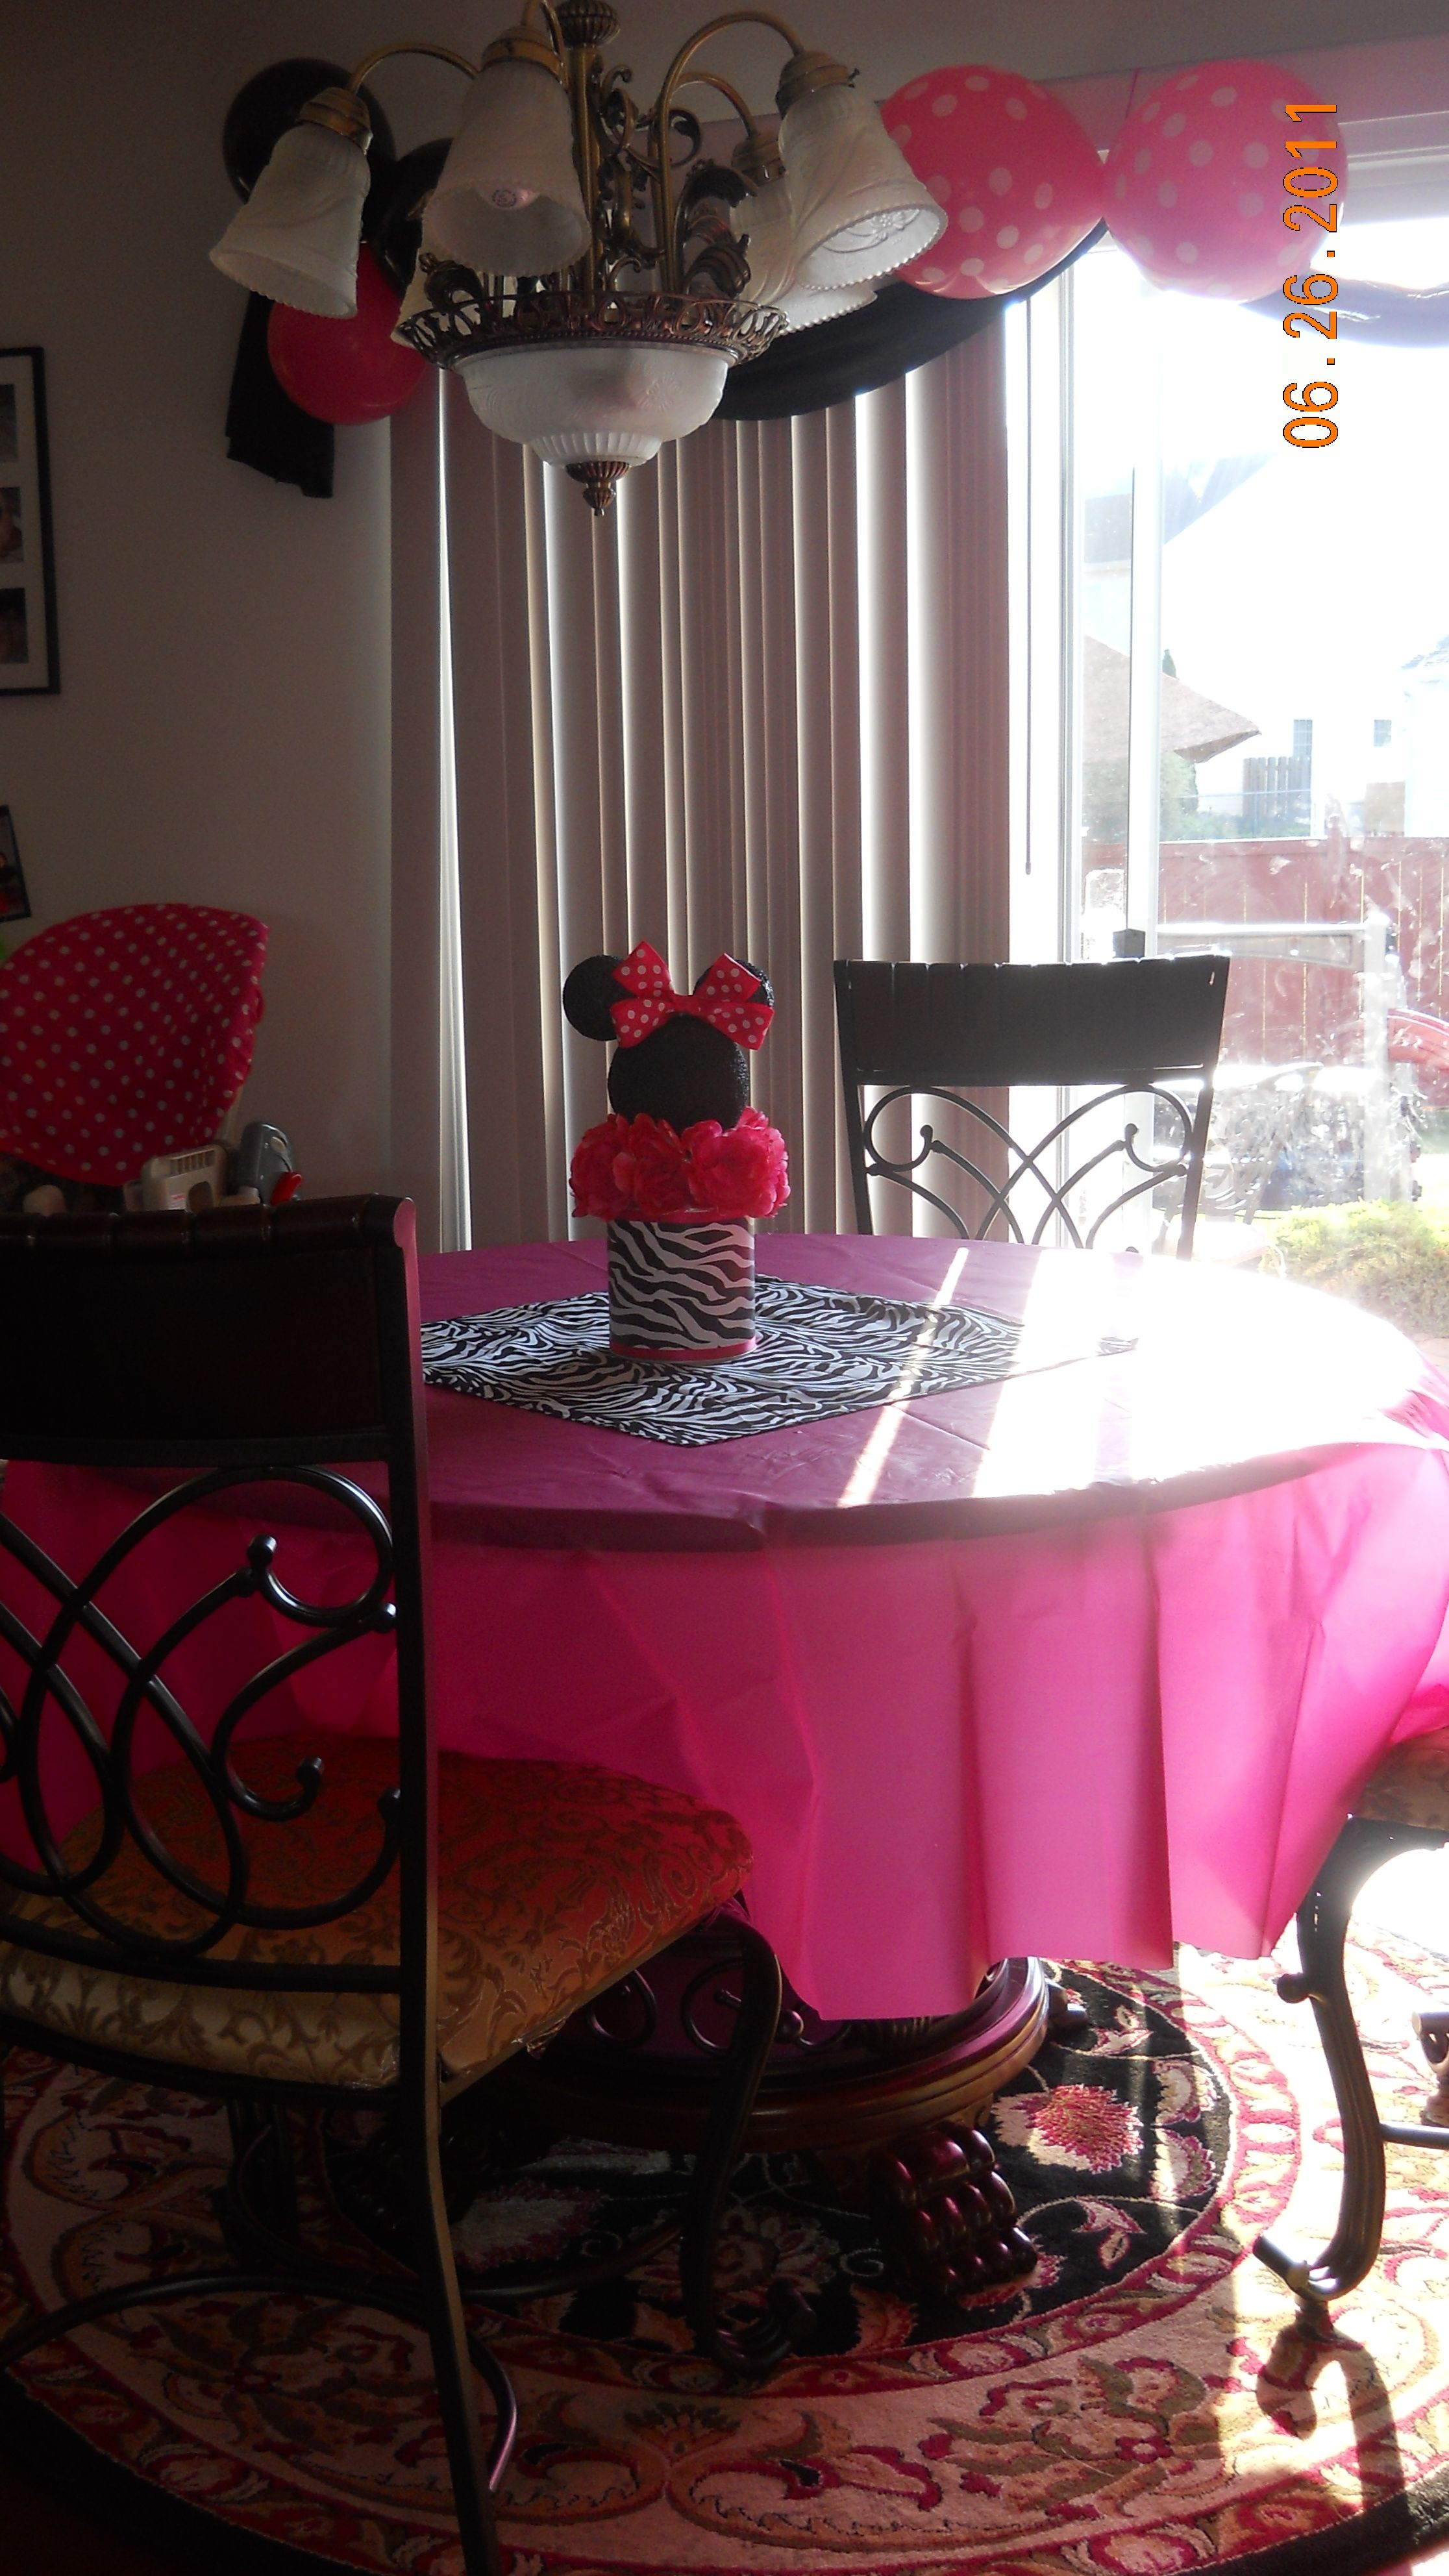 black chair covers party city sofa nz i bought the and pink polka dot balloons at hobby lobby plastic table paper plates cups